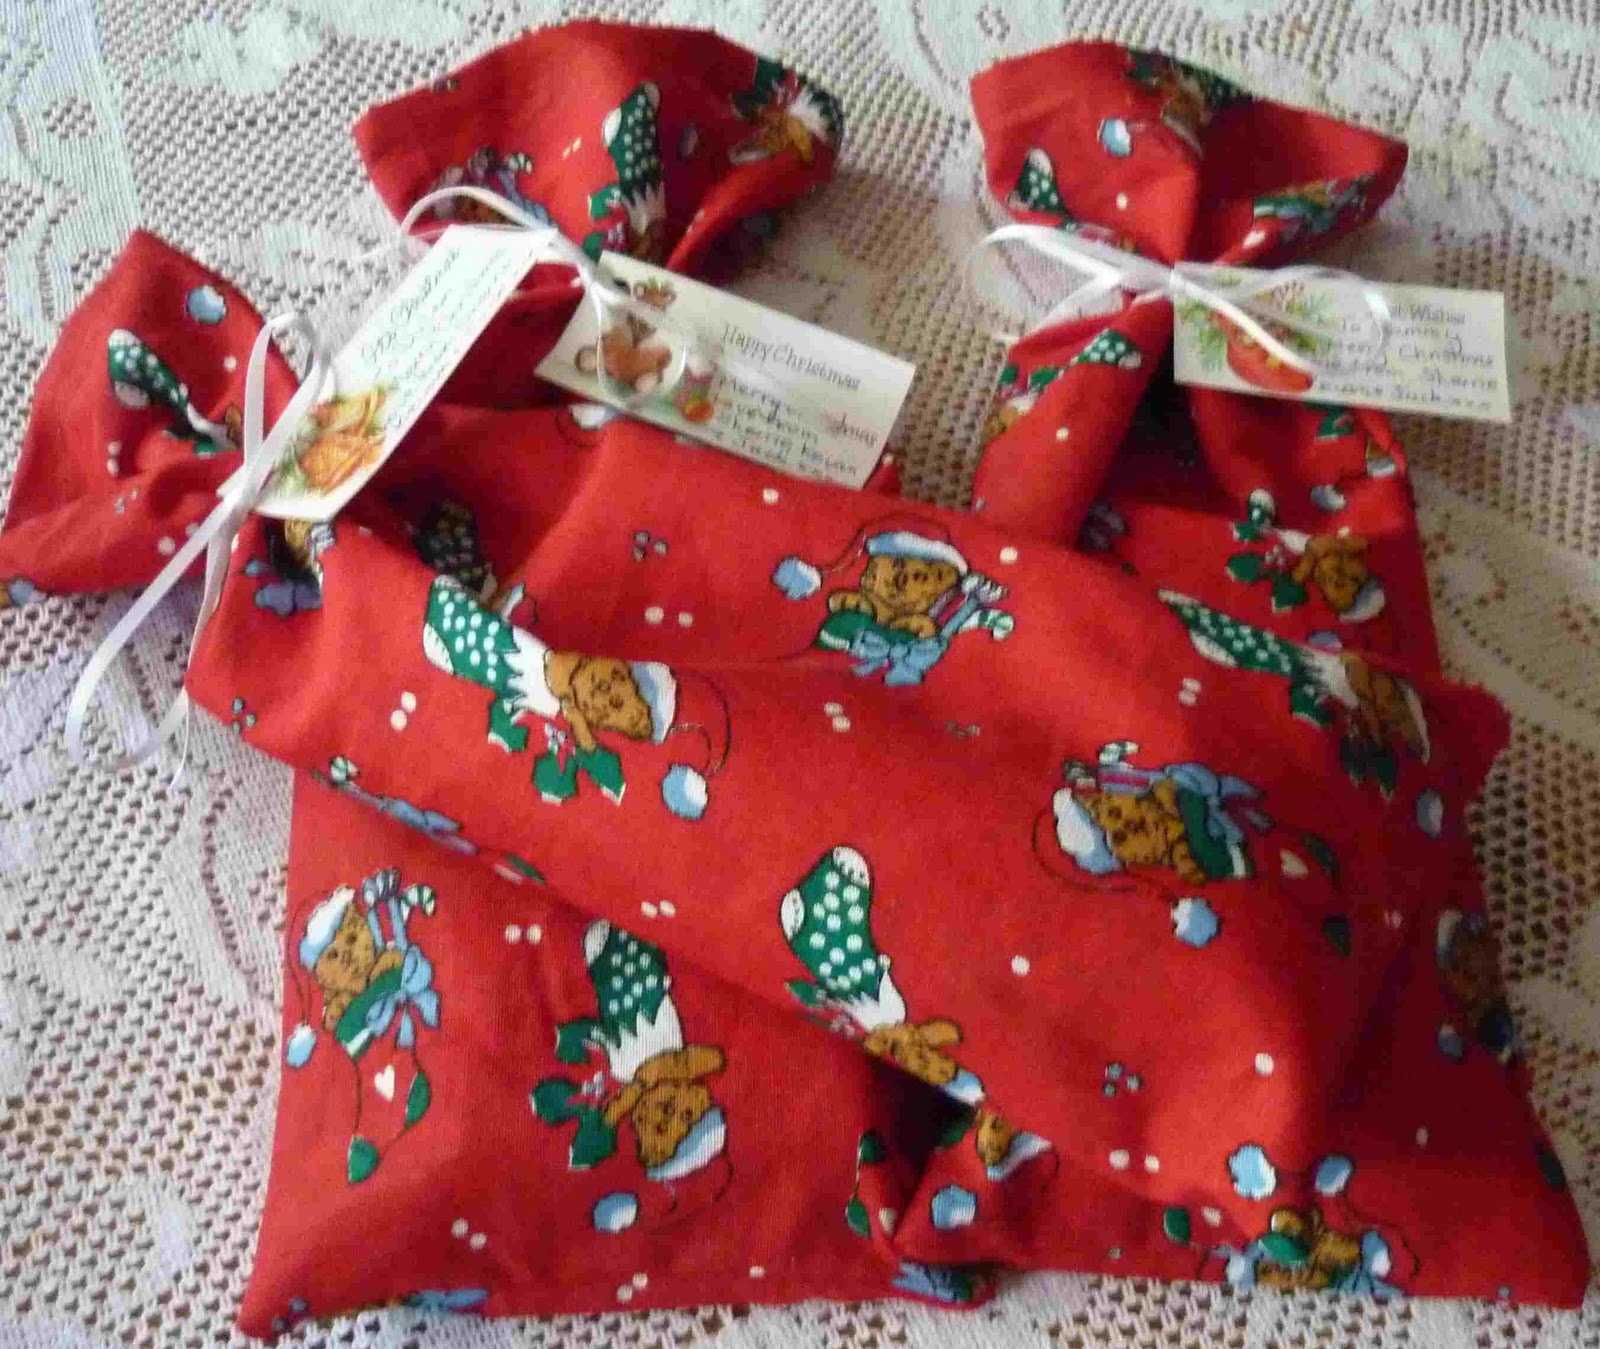 Simpleliving: Make Fabric Bags For Christmas Gifts!